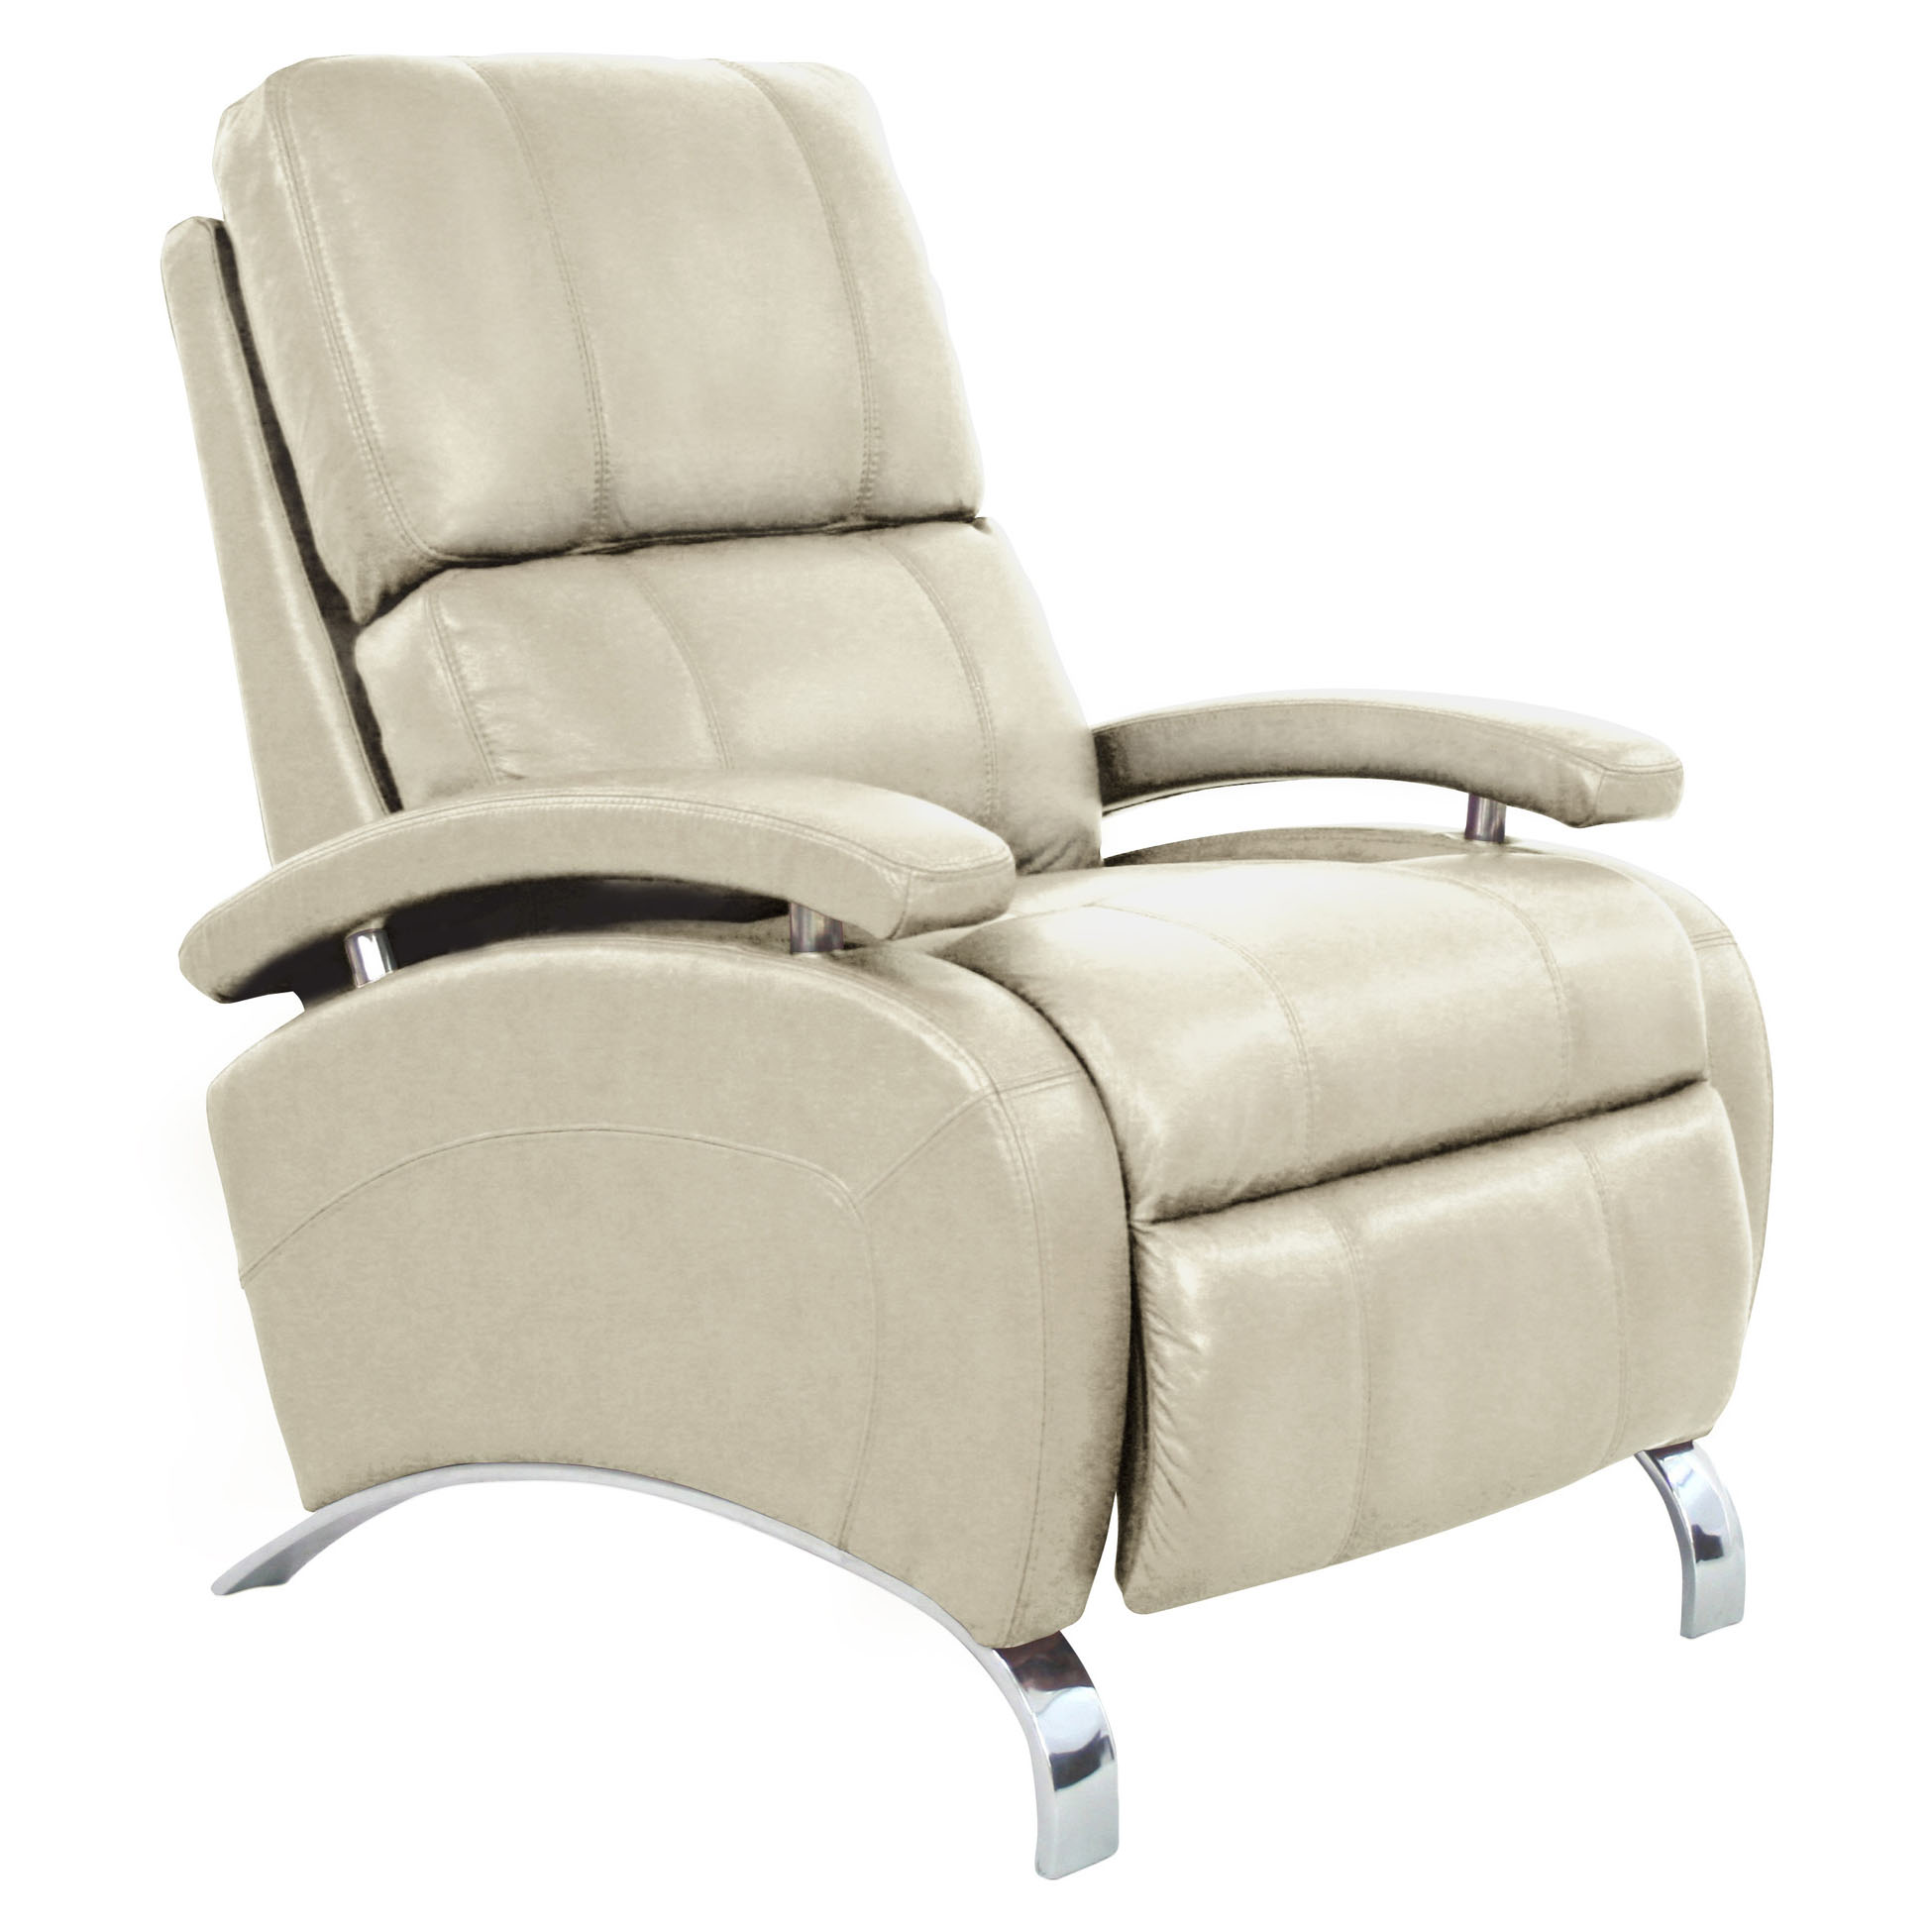 Lovely Barcalounger Oracle II Recliner Chair - Leather Recliner Chair  OS44